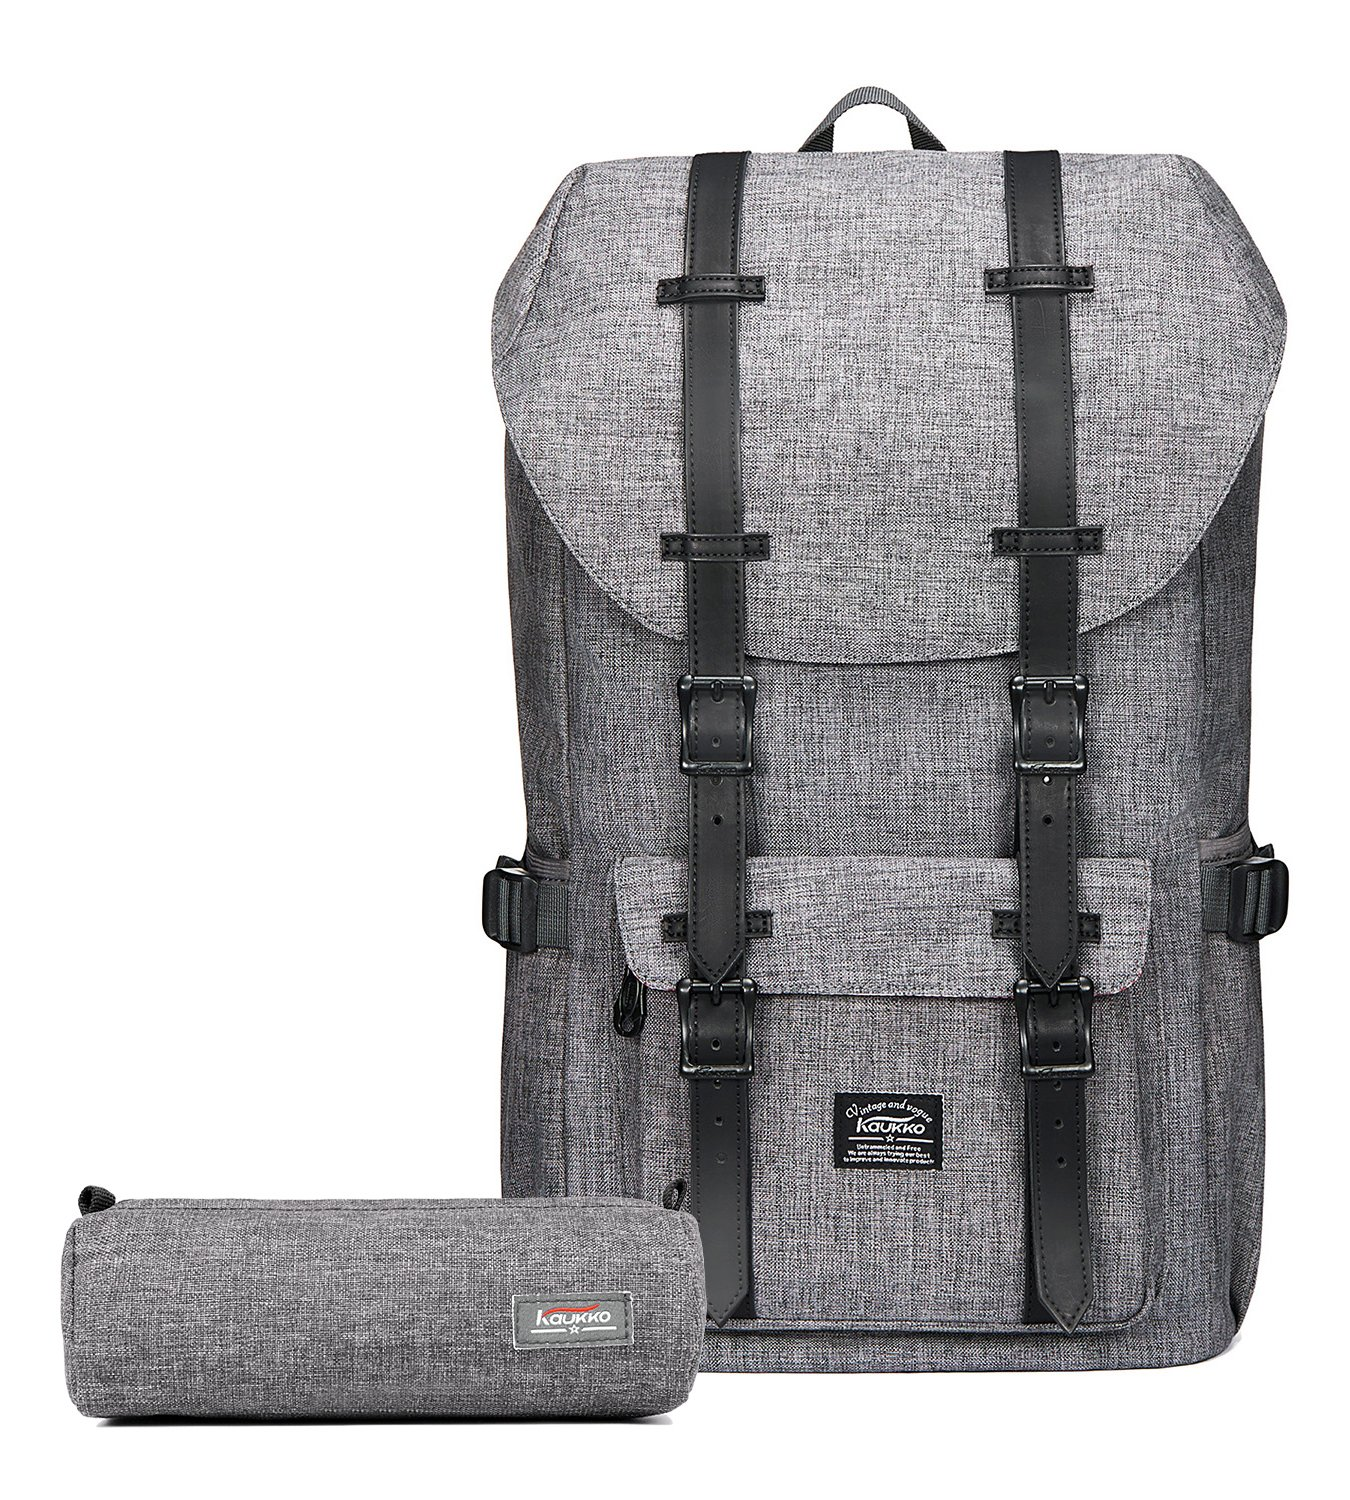 KAUKKO Laptop Outdoor Backpack, Travel Hiking& Camping Rucksack Pack, Casual Large College School Daypack, Shoulder Book Bags Back Fits 15'' Laptop & Tablets (1Linen Grey(2pc)) by KAUKKO